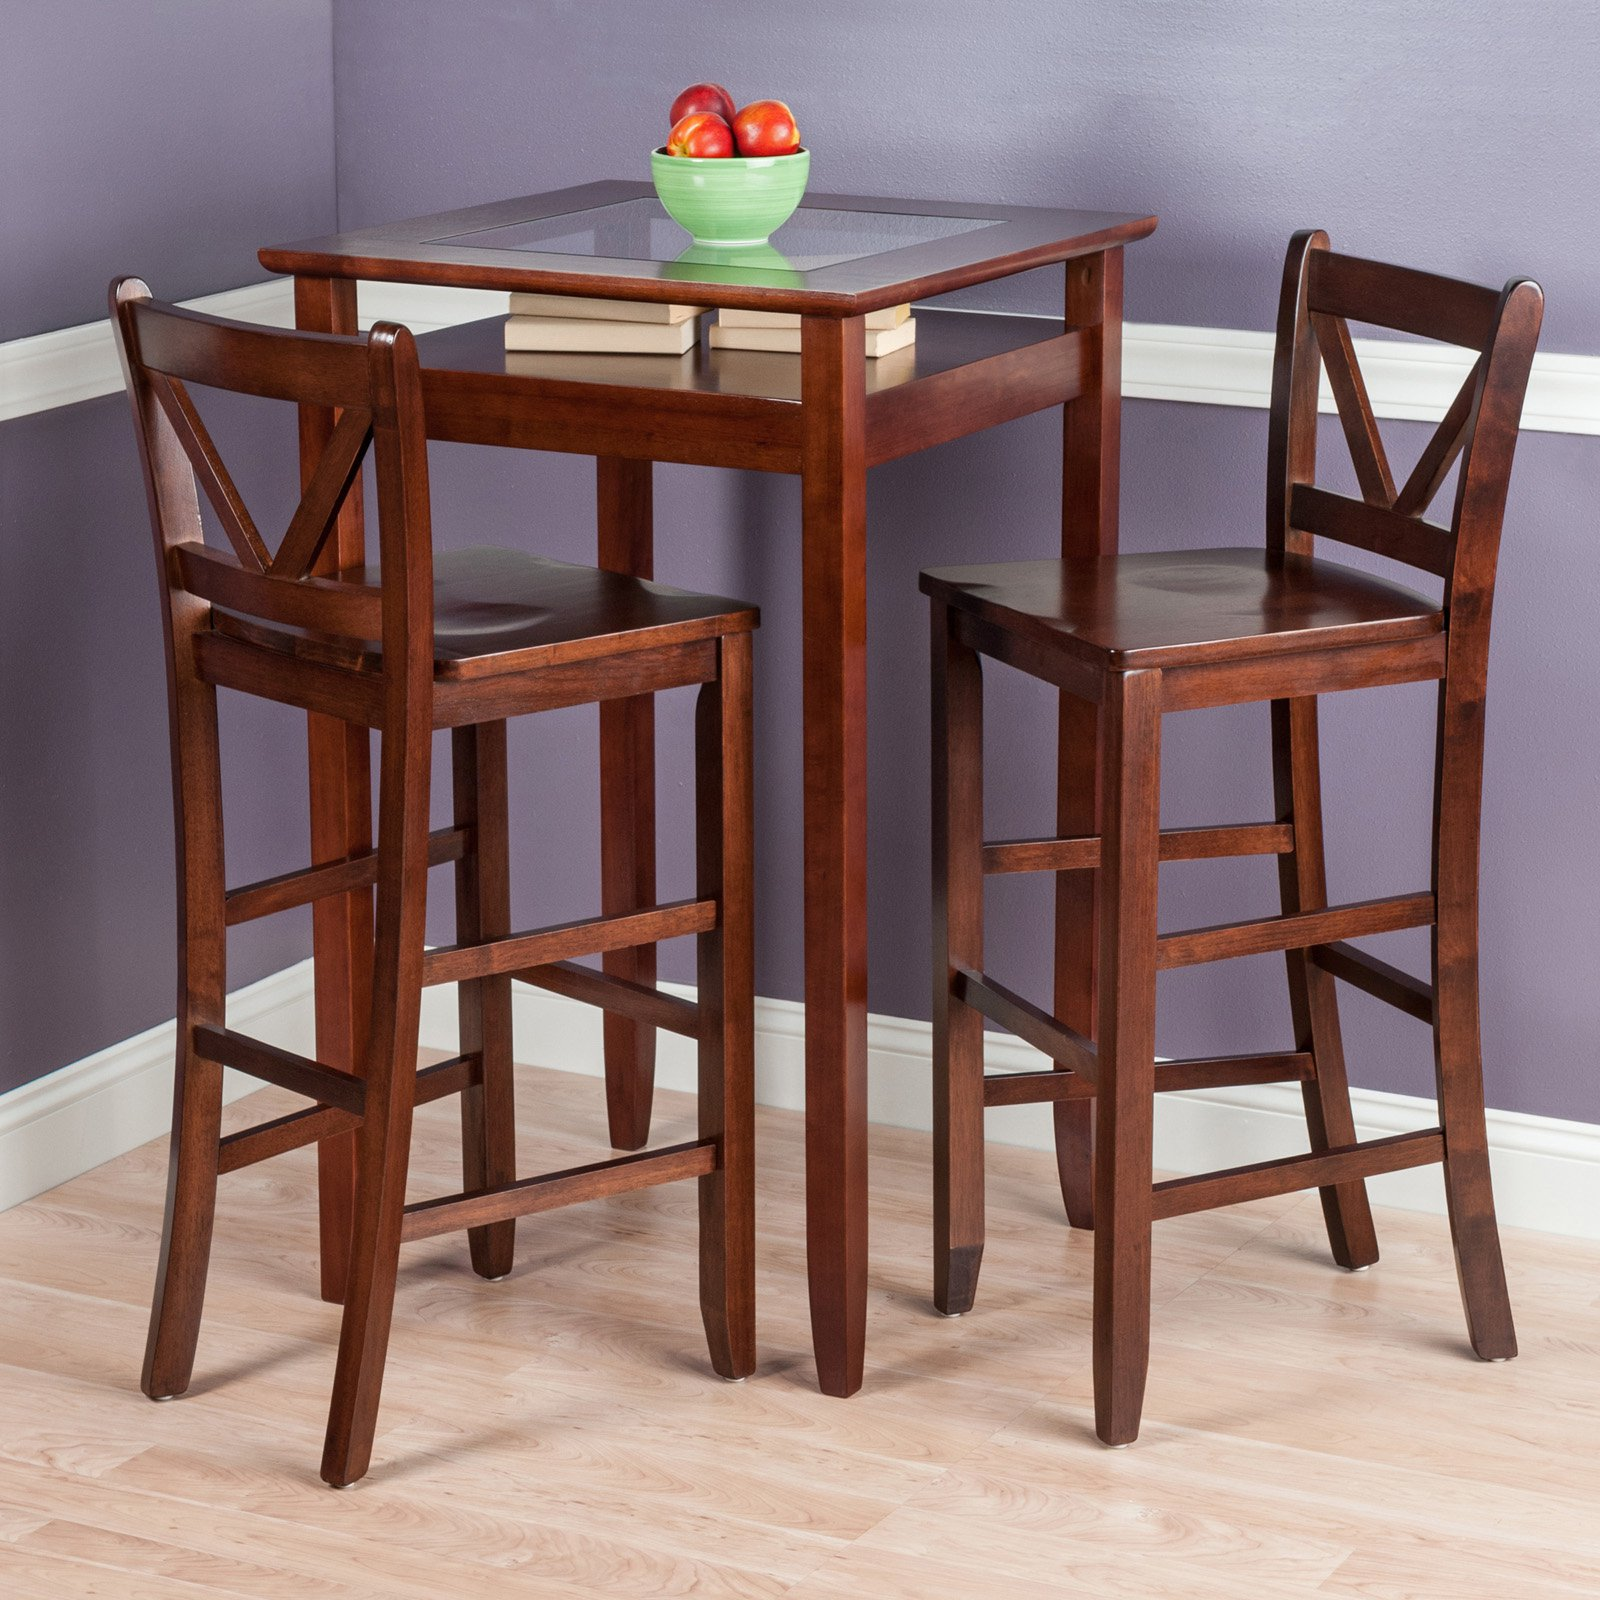 Halo 3pc Pub Table Set with 2 V-Back Stools by Winsome Wood